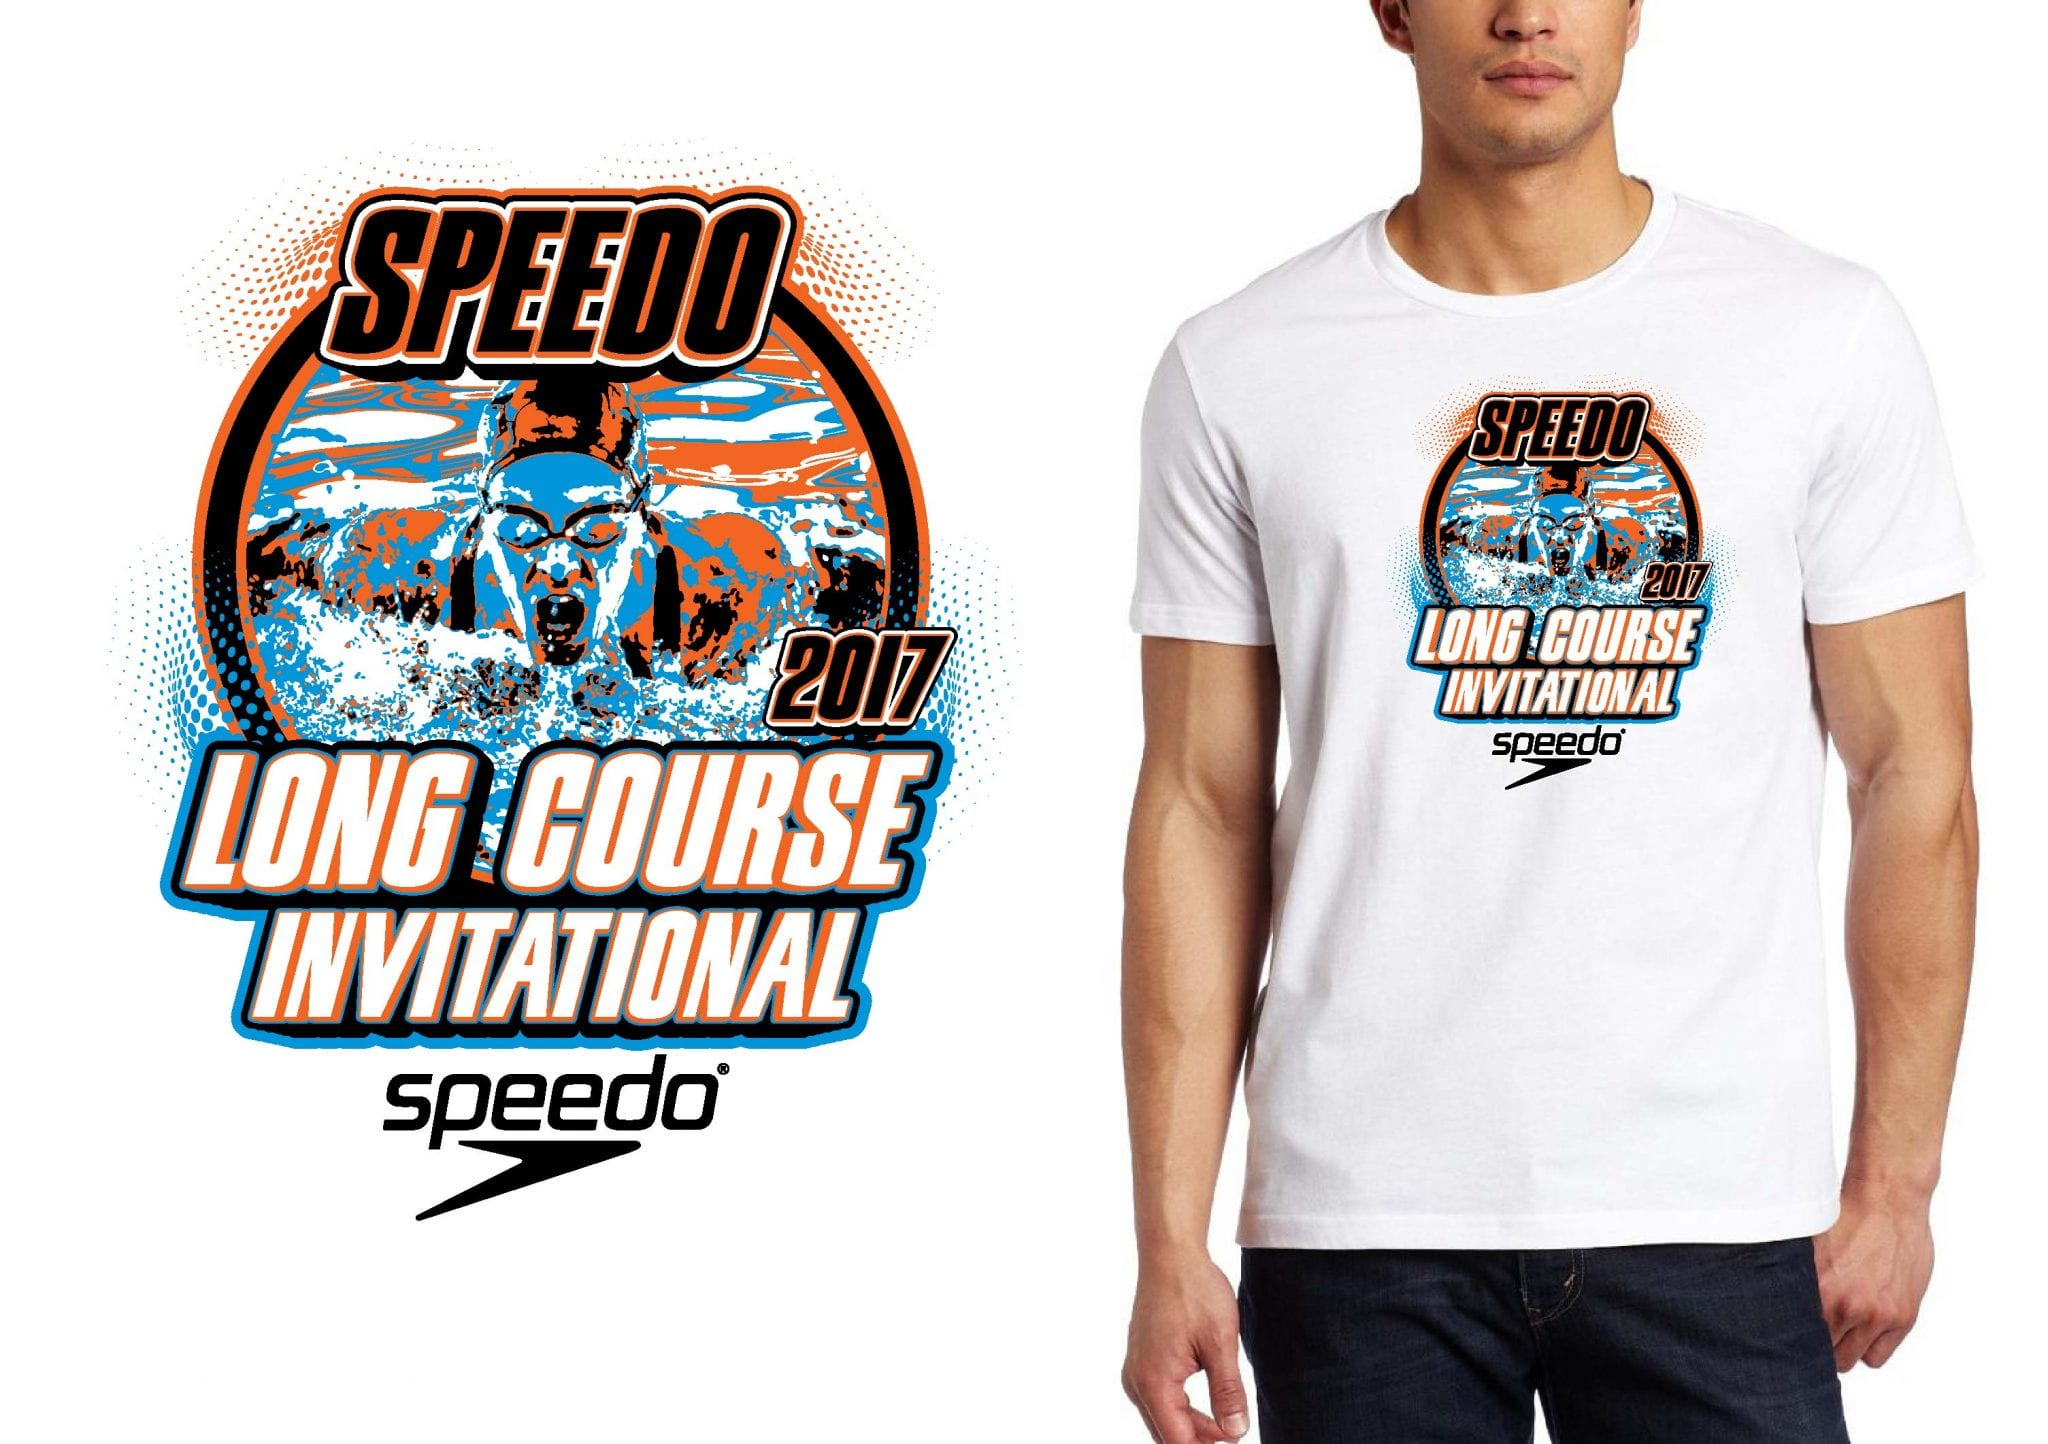 SWIMMING LOGO for Speedo-LC-Invitational-at-Frank-Brown T-SHIRT UrArtStudio